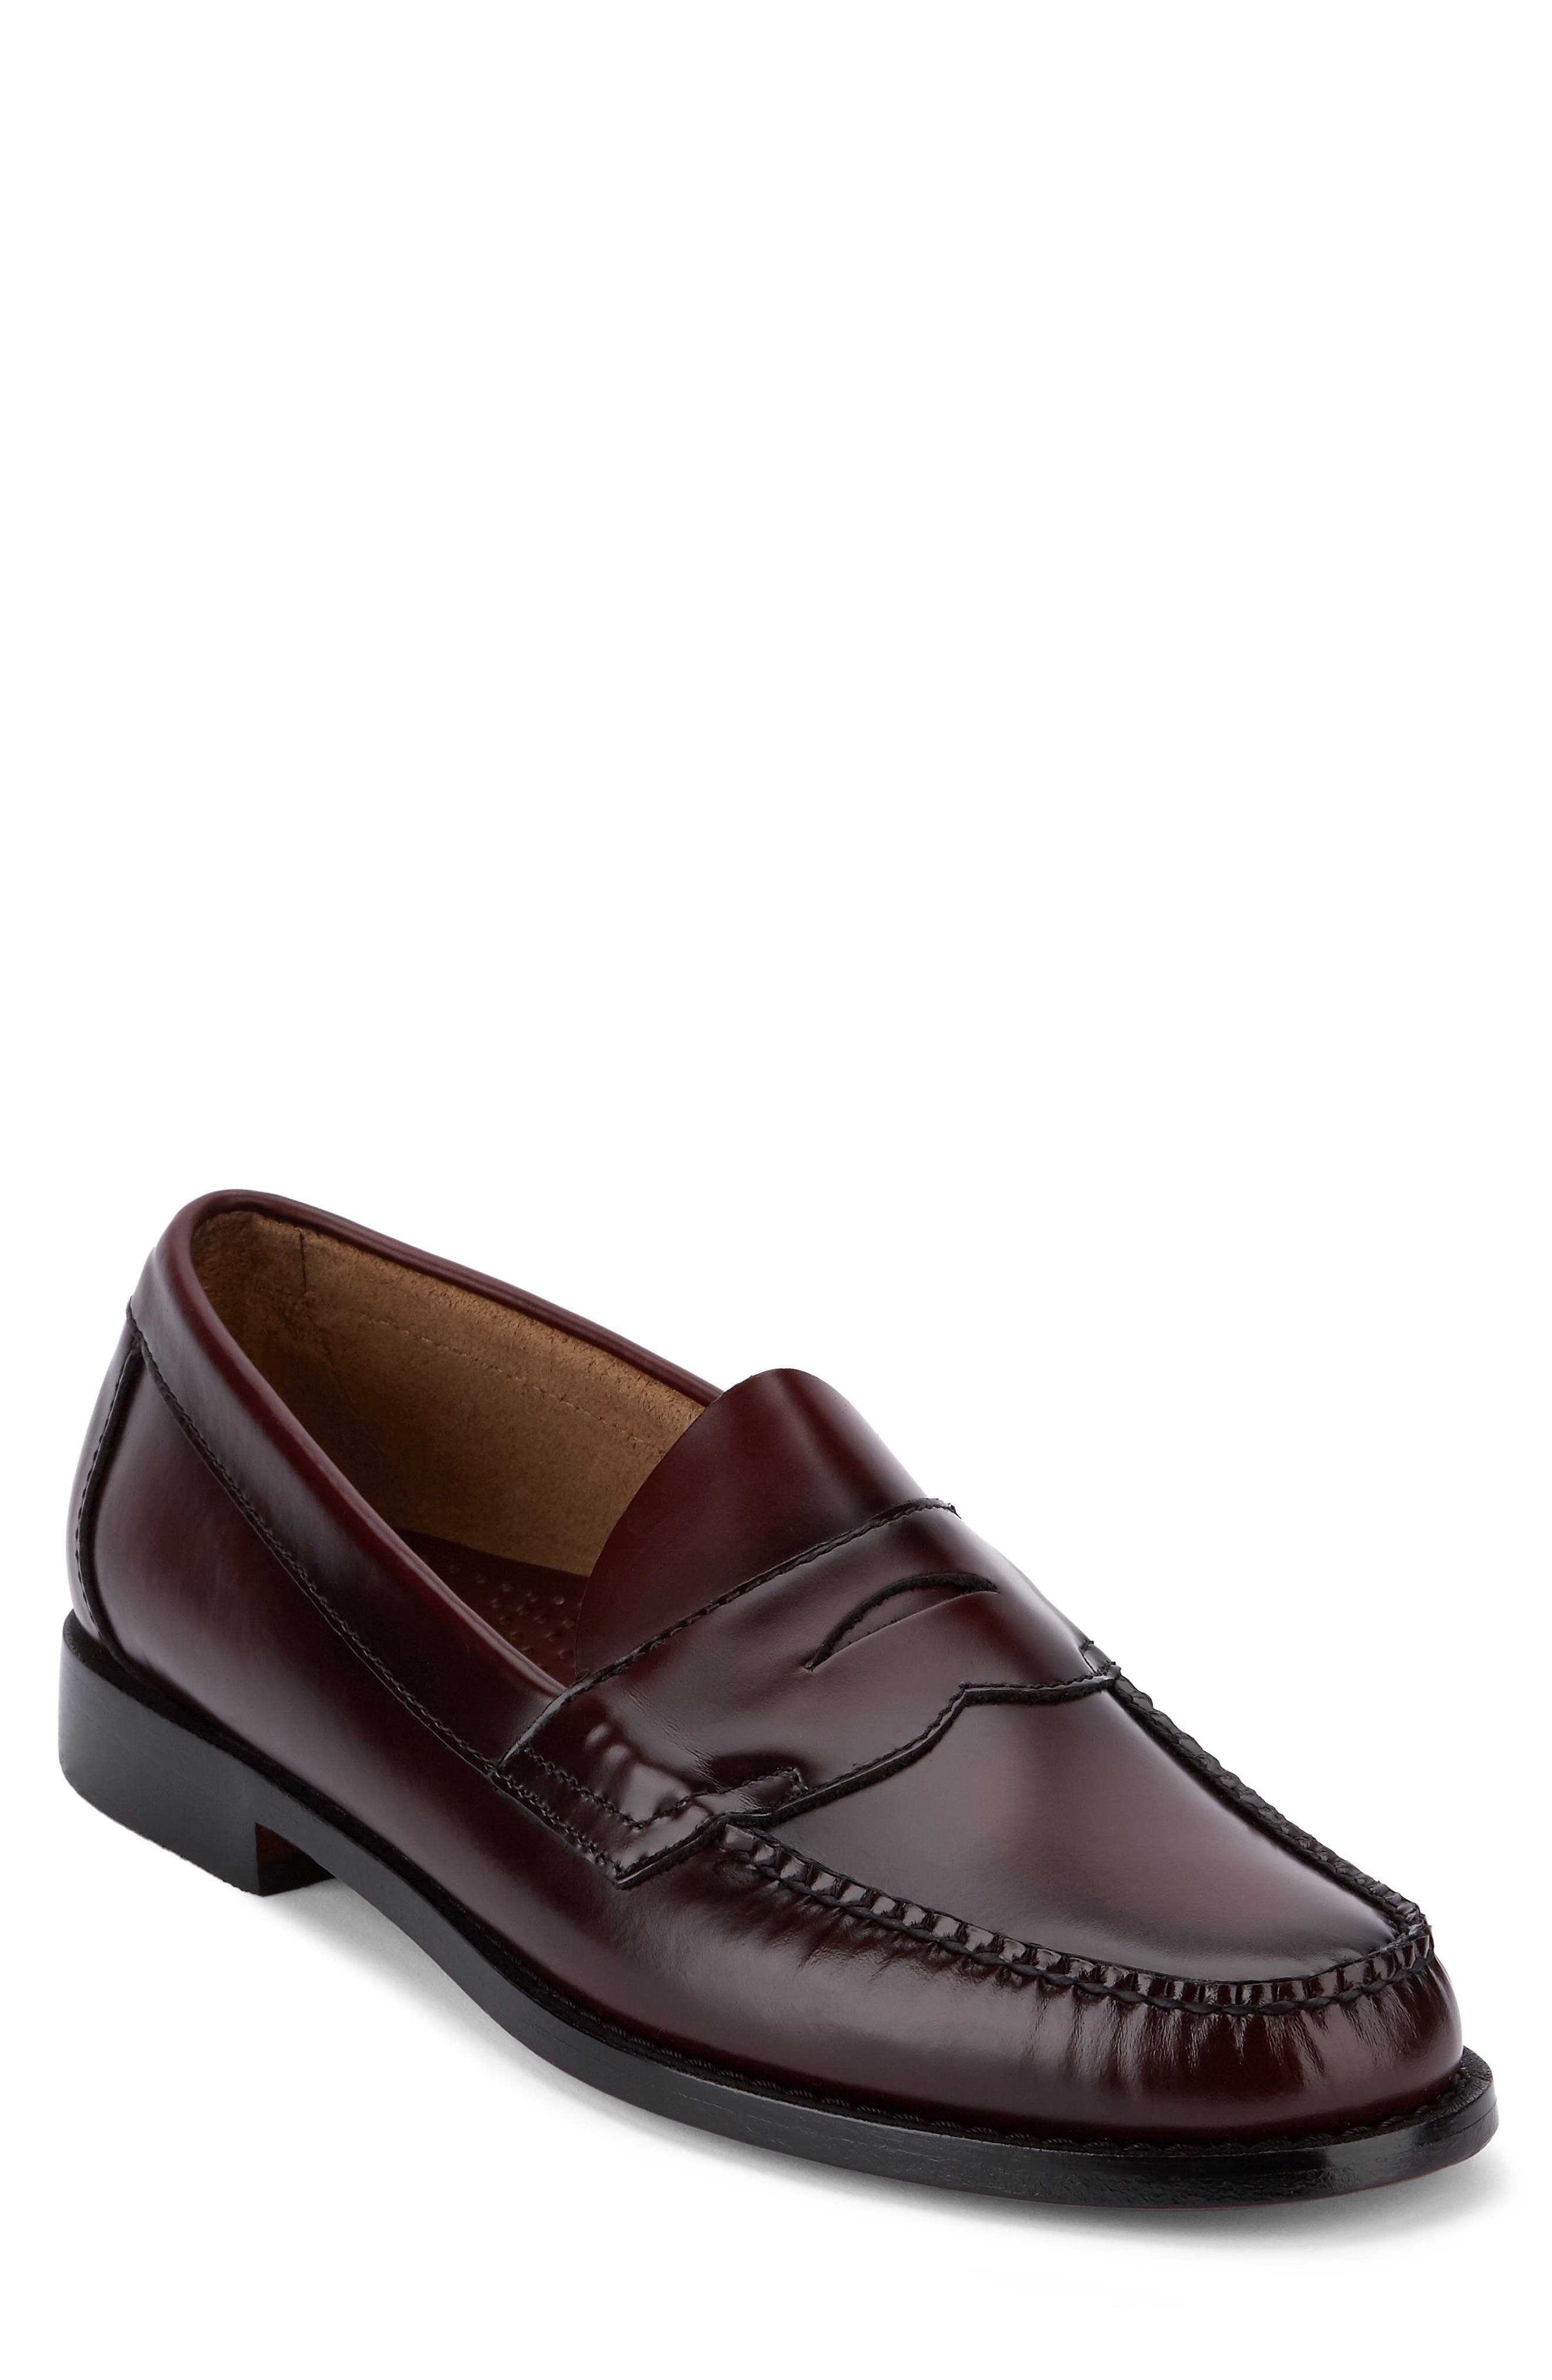 Main Image - G.H. Bass & Co. Logan Penny Loafer (Men)